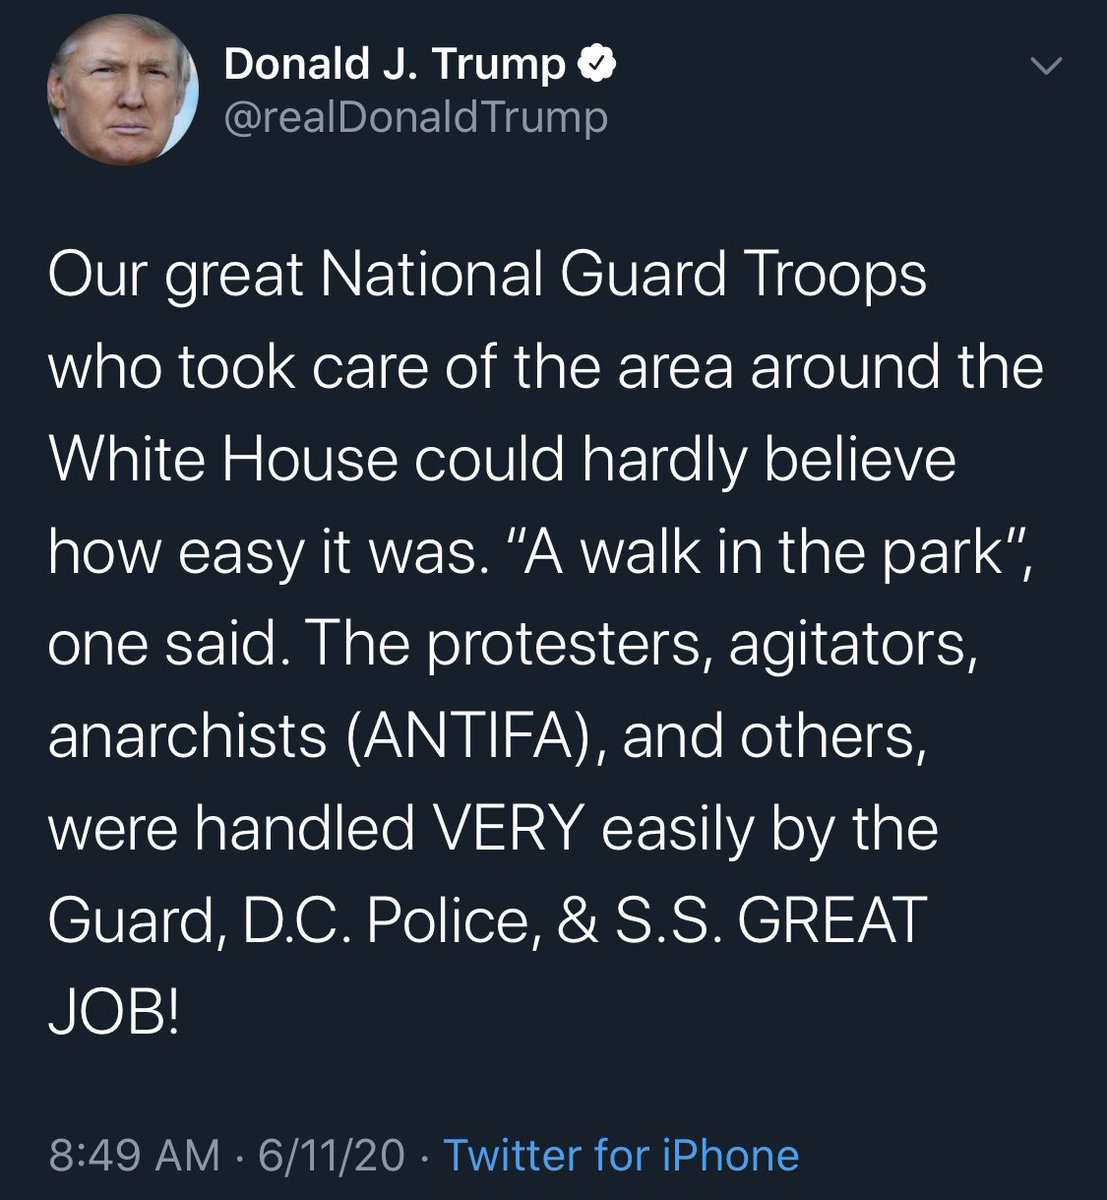 The fact that the President would refer to the United States Secret Service as the S.S. is beyond disturbing.